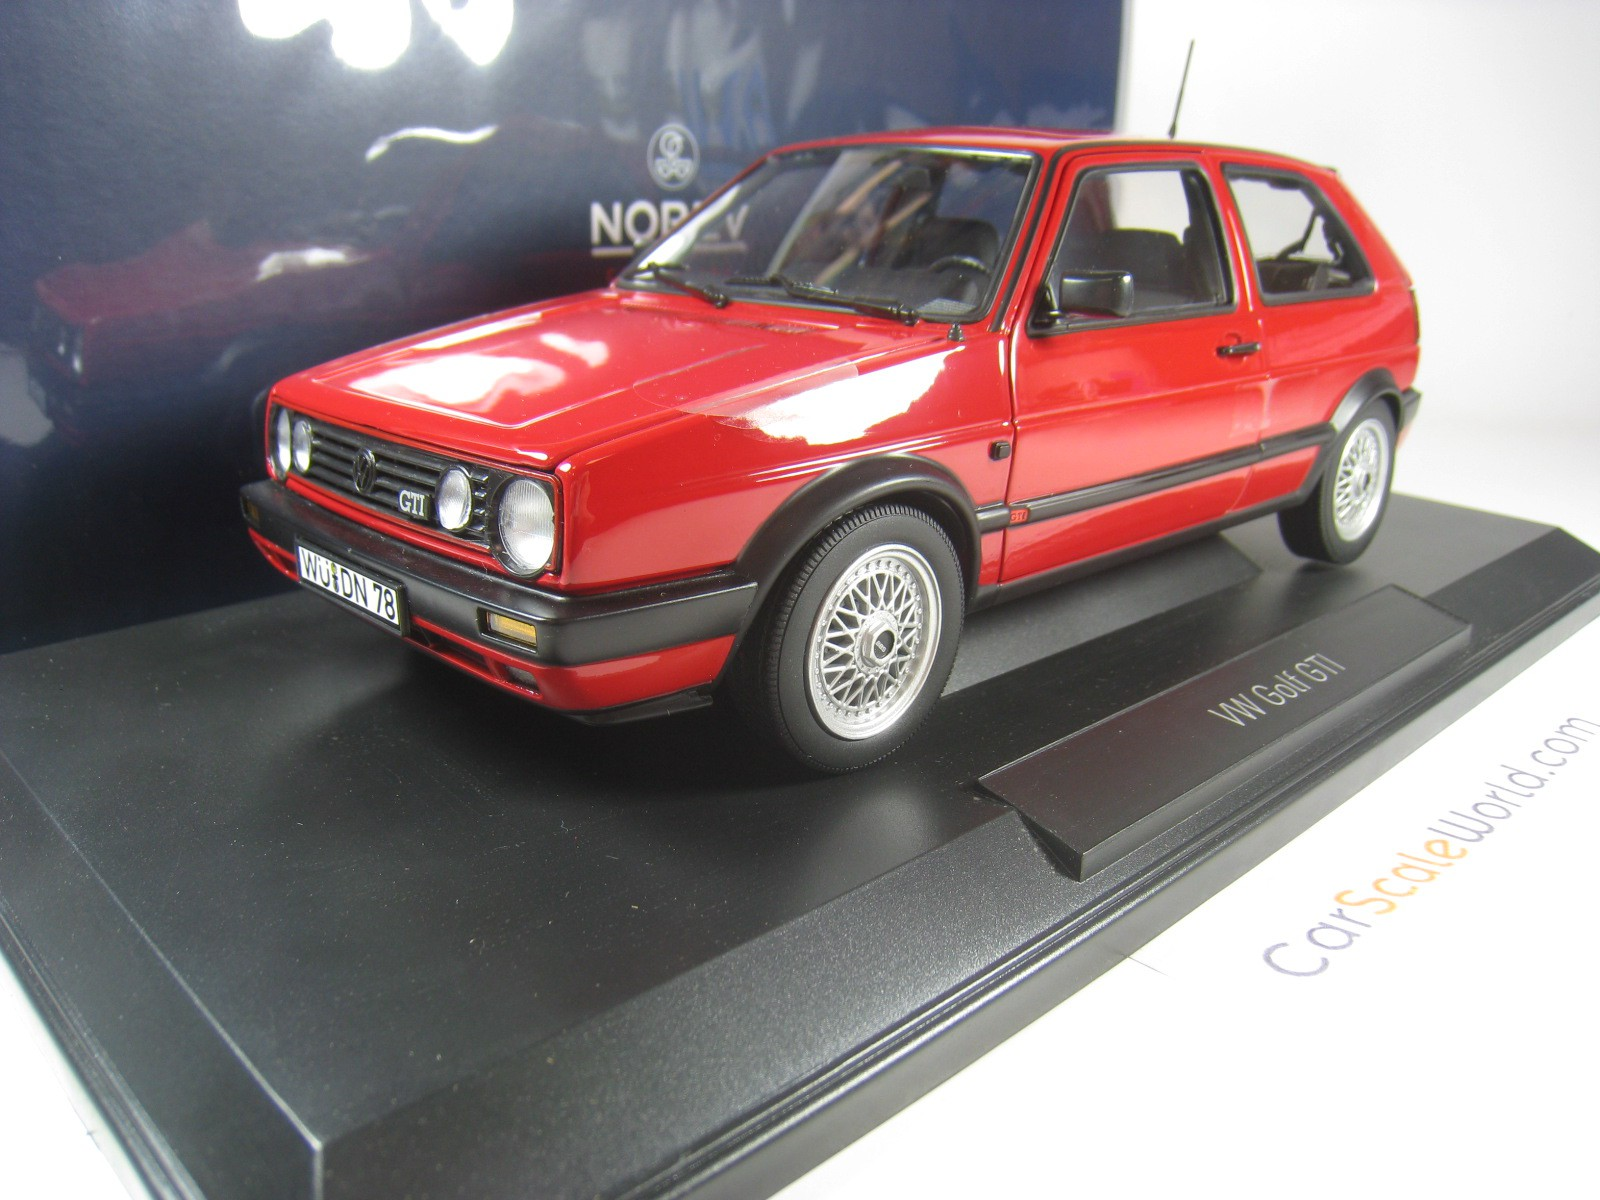 vw-golf-gti-mk2-1-18-norev-red-1.jpeg